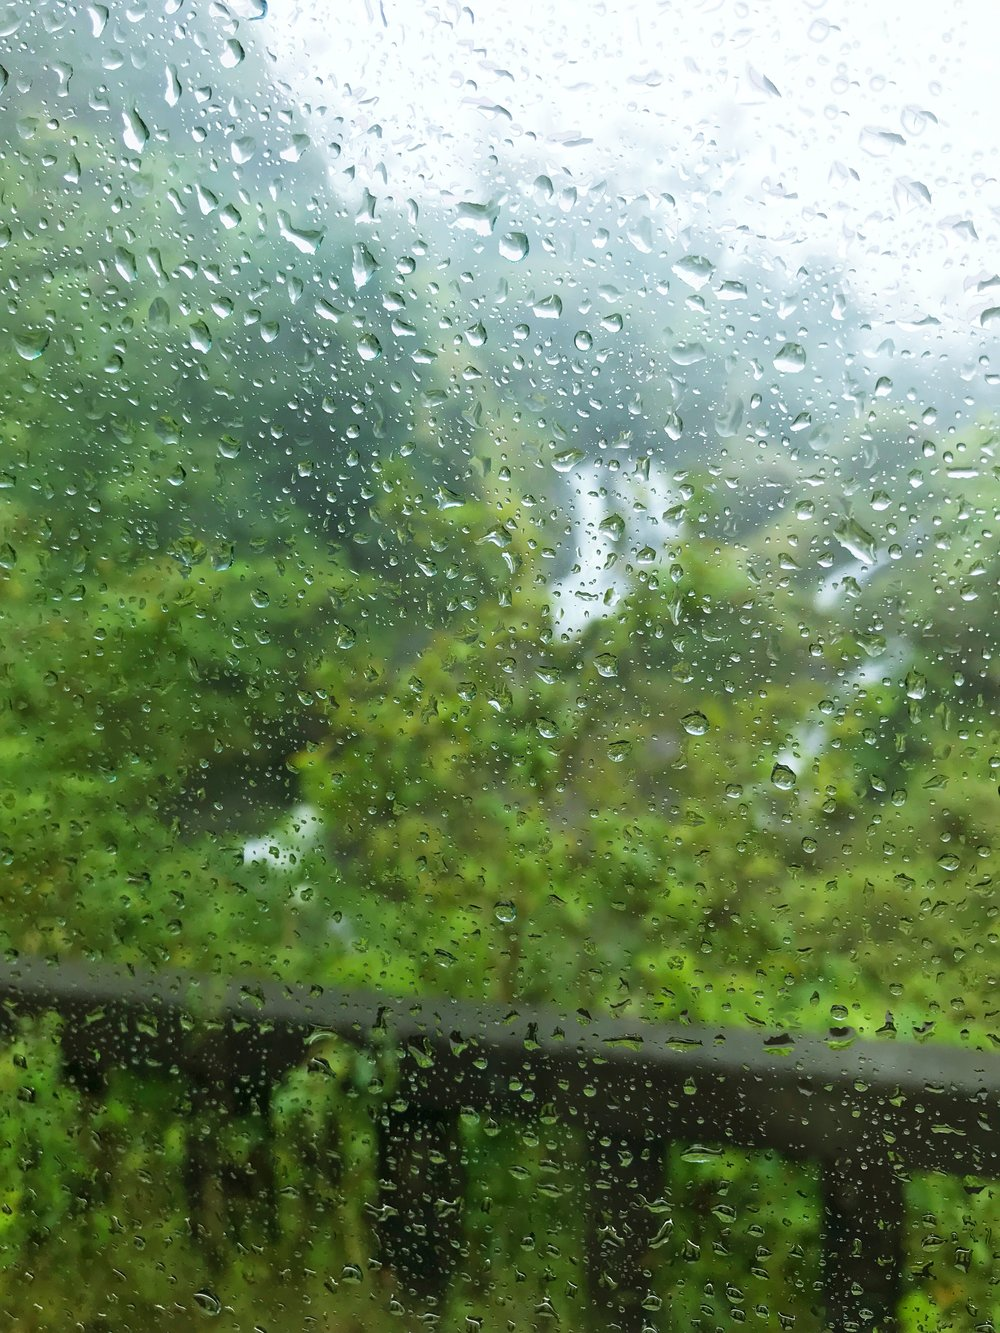 Rainy_Jungle